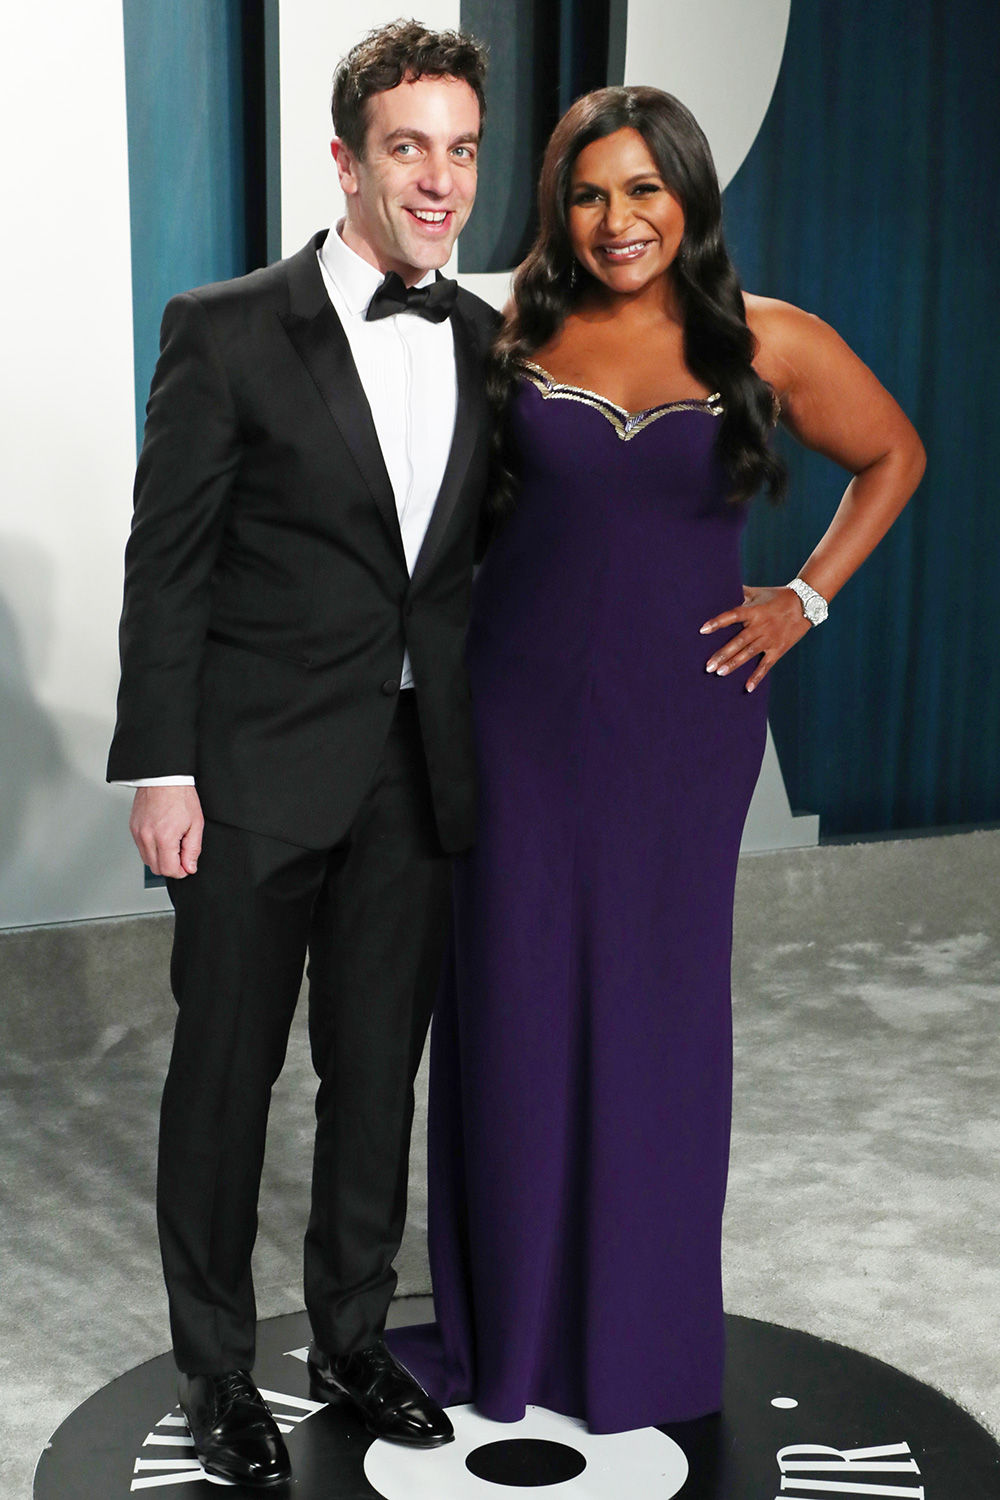 BJ Novak and Mindy Kaling Vanity Fair Oscar Party, Arrivals, Los Angeles, USA - 09 Feb 2020